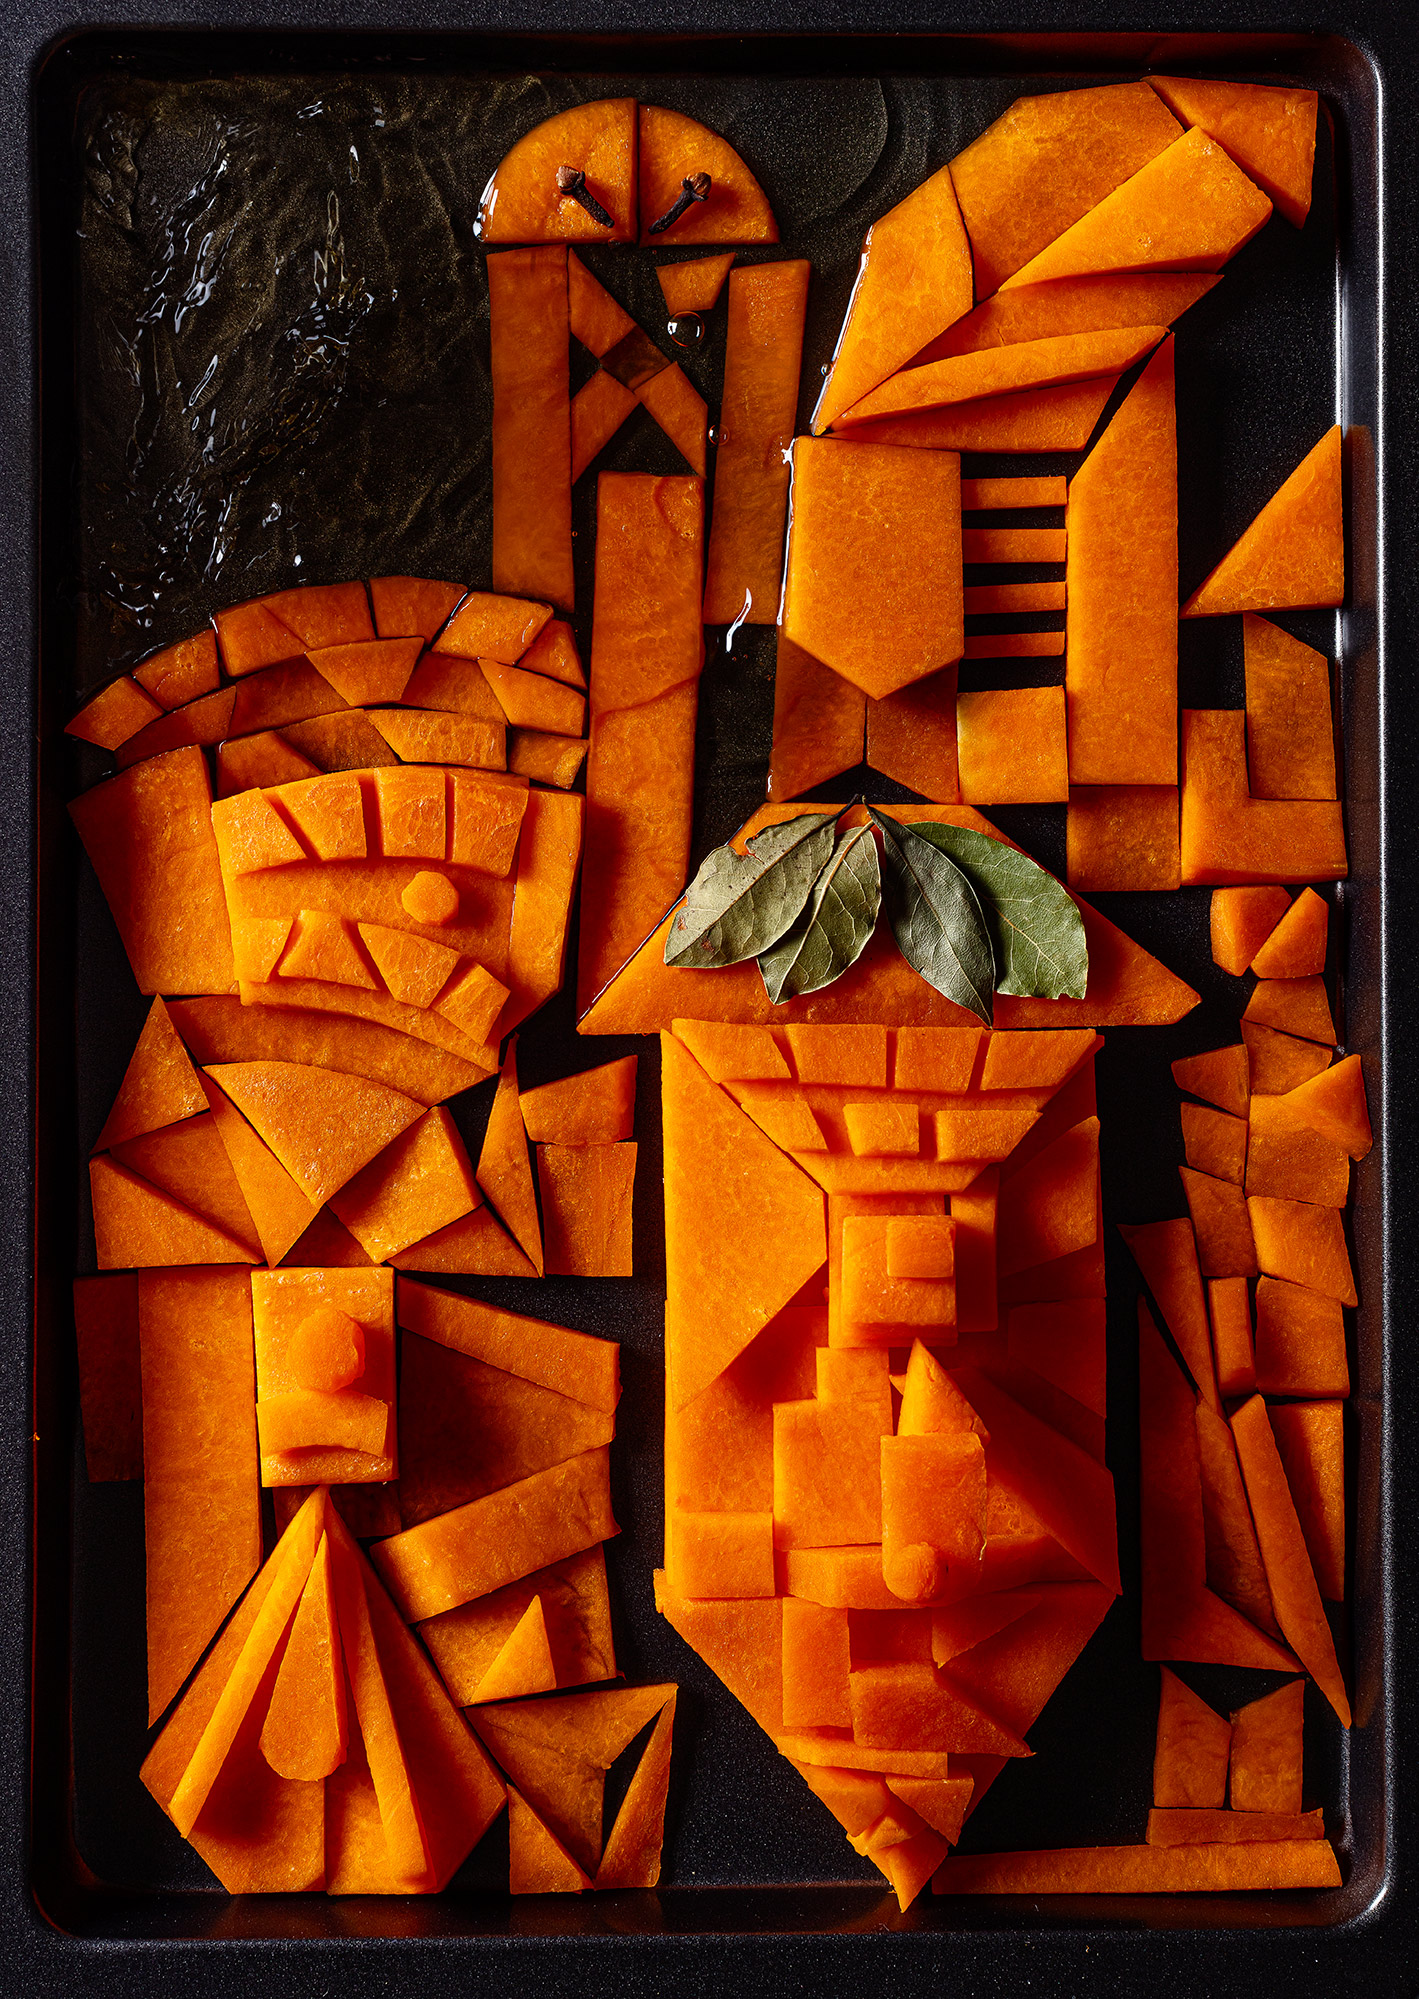 """Second step for making pumpkin ketchup. Pumpkin together with apple juice and bay leaves and cloves. The photo is inspired by an image from Paul Klee - """"Castle Garden""""."""